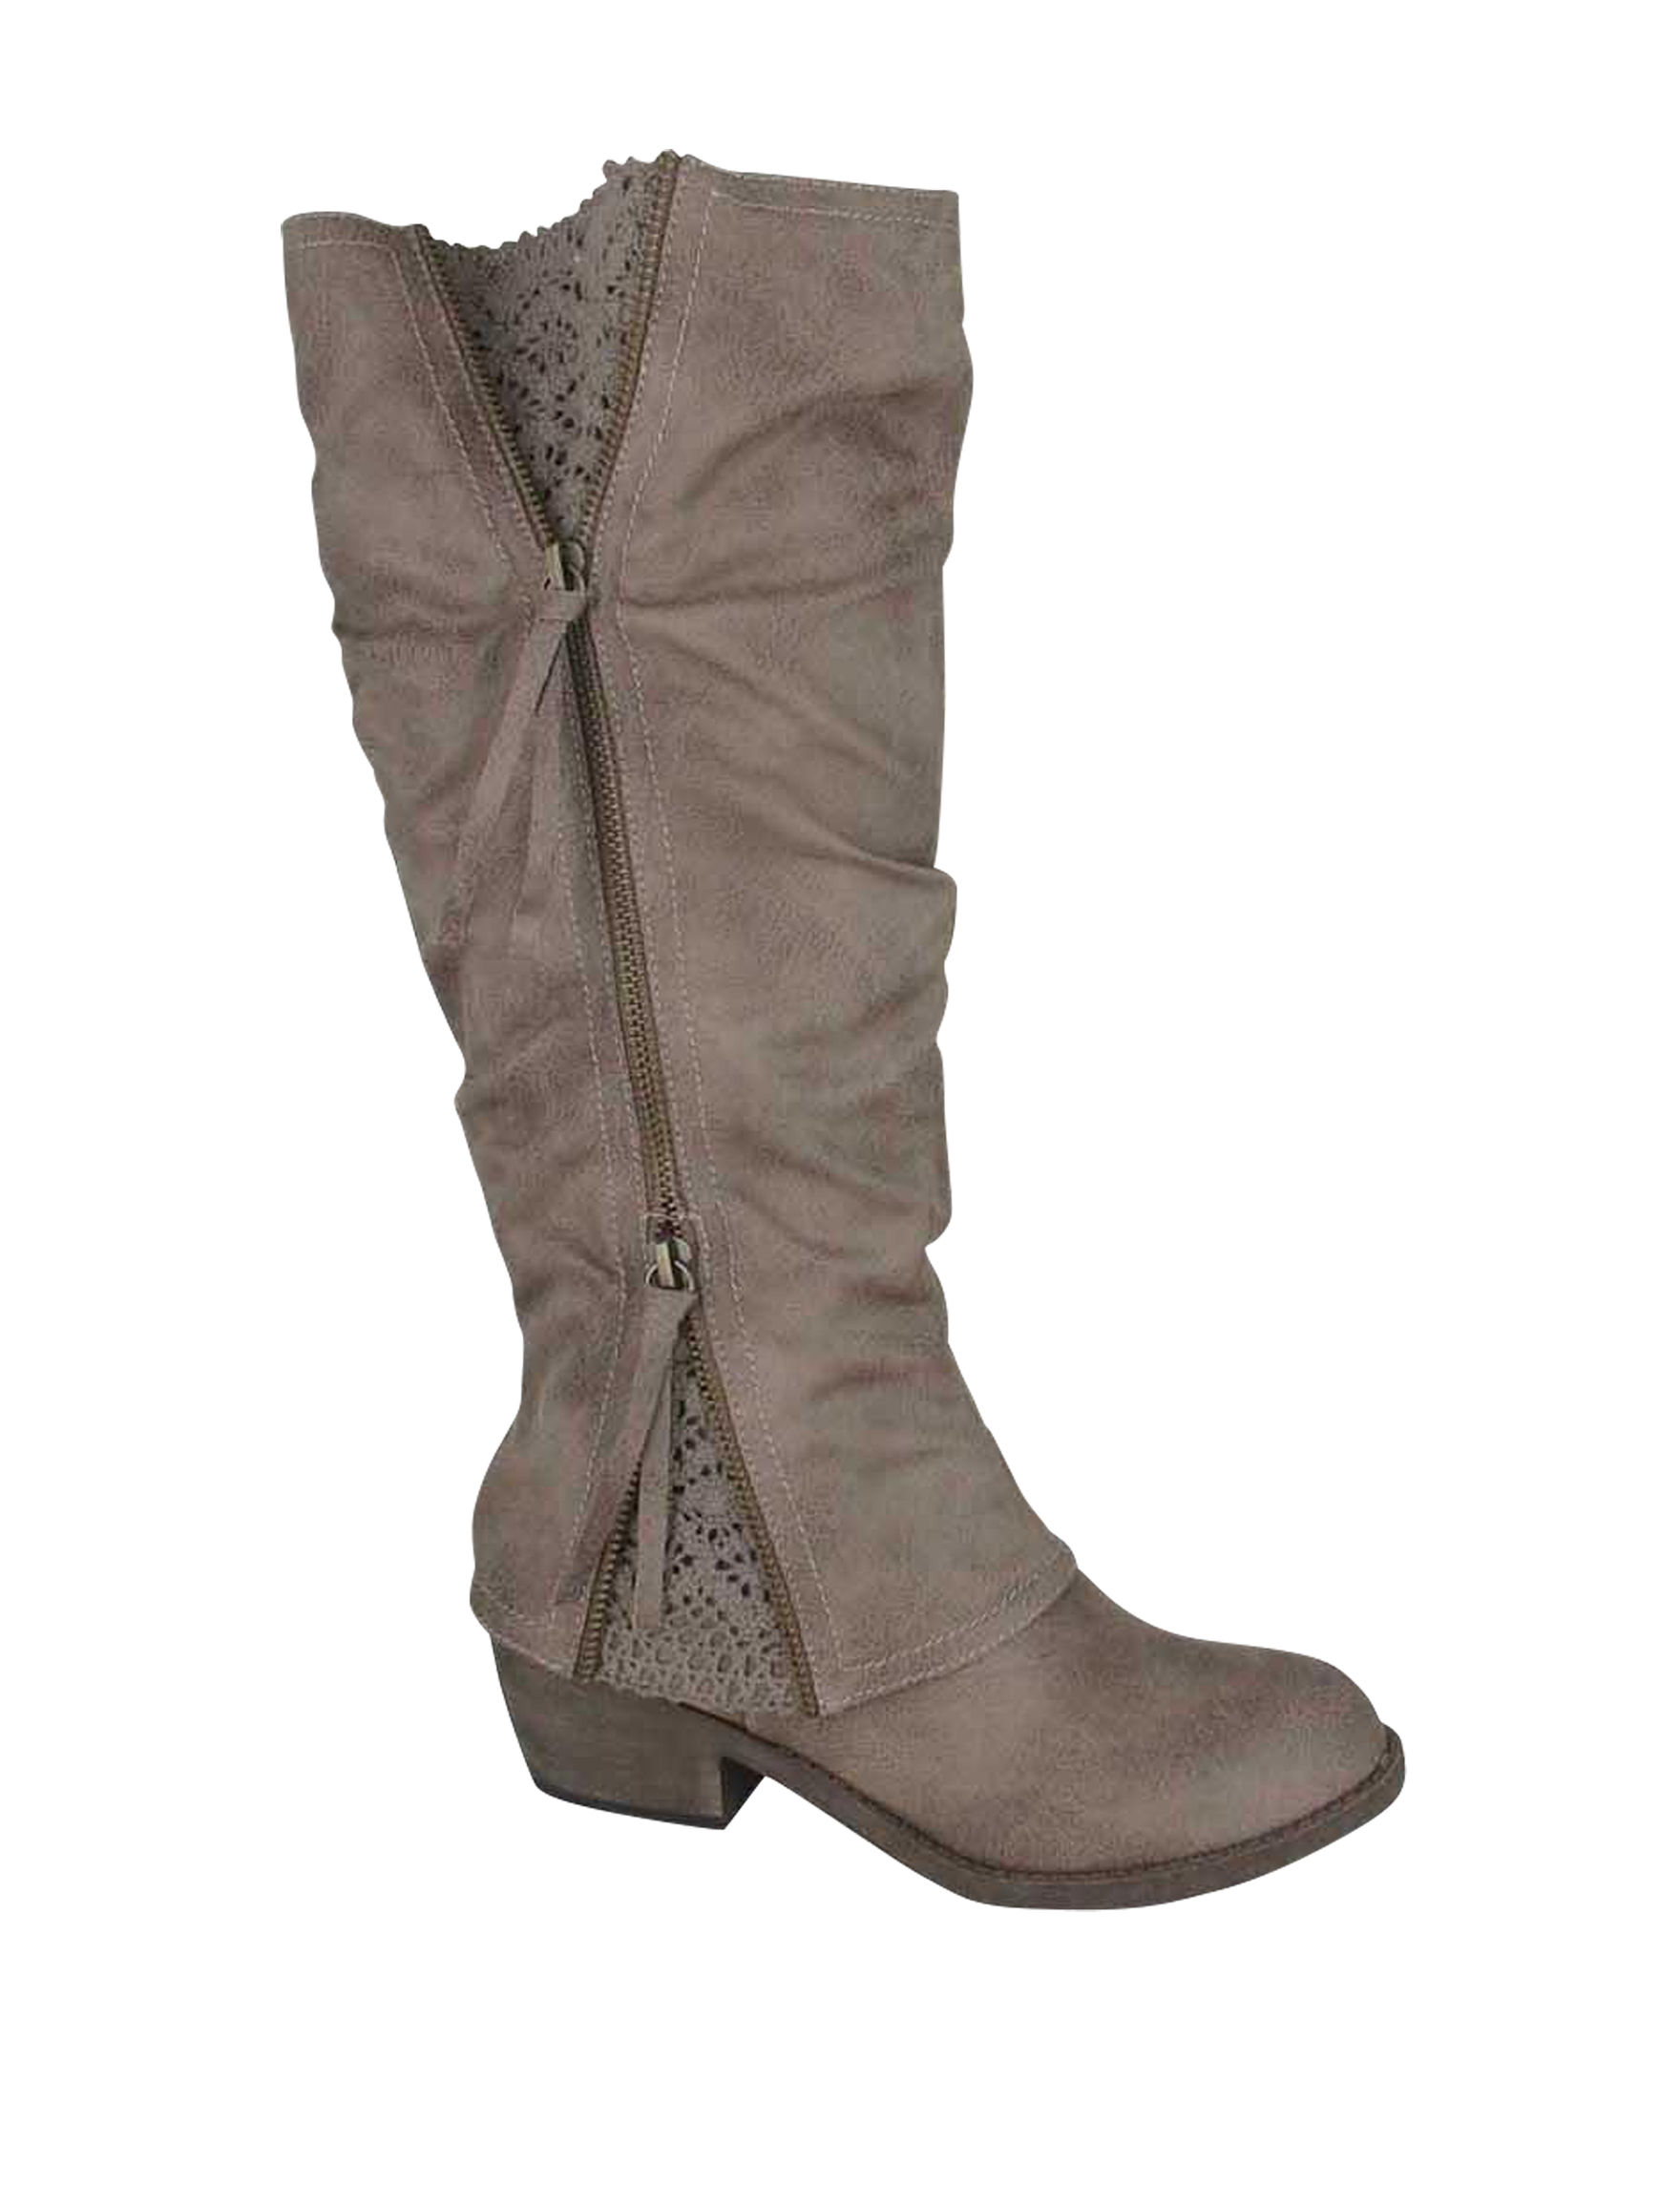 Jellypop Taupe Riding Boots